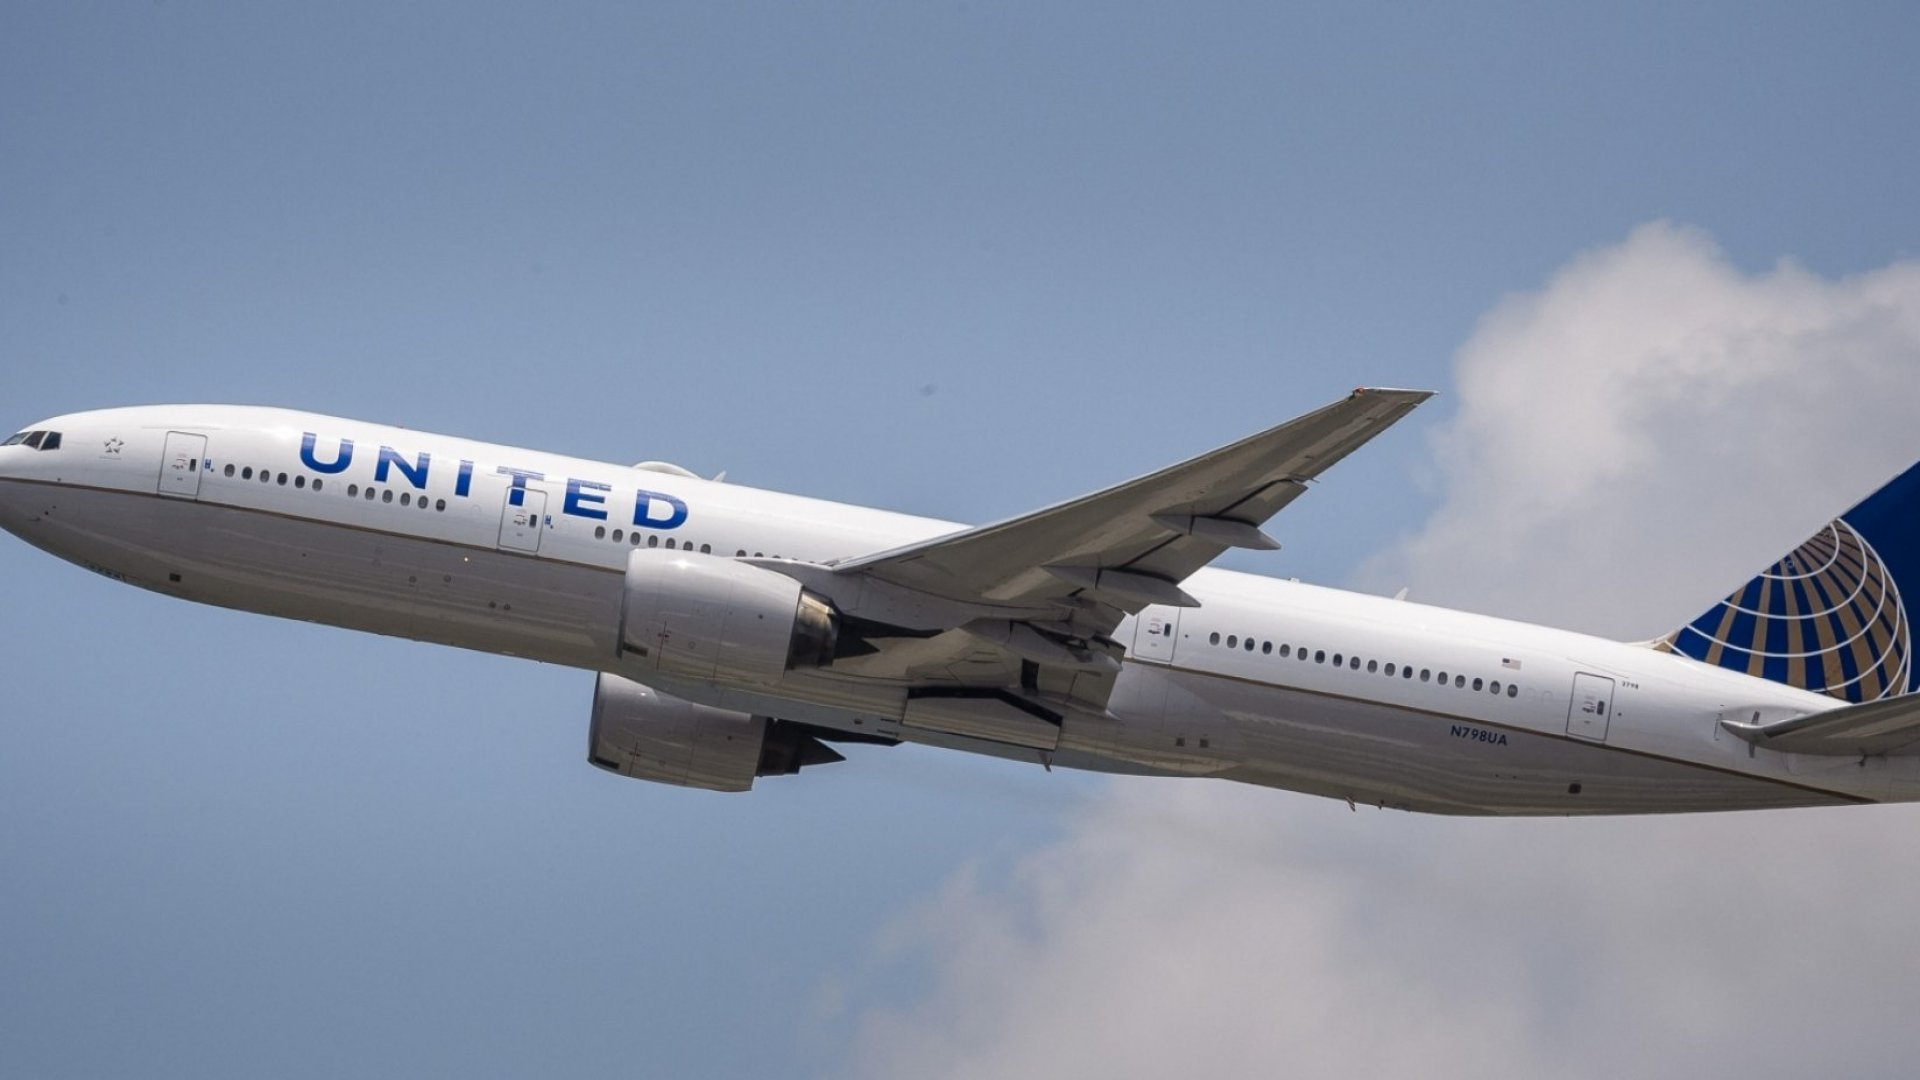 United Airlines Just Showed True Thoughtfulness in a Moment of Tragedy